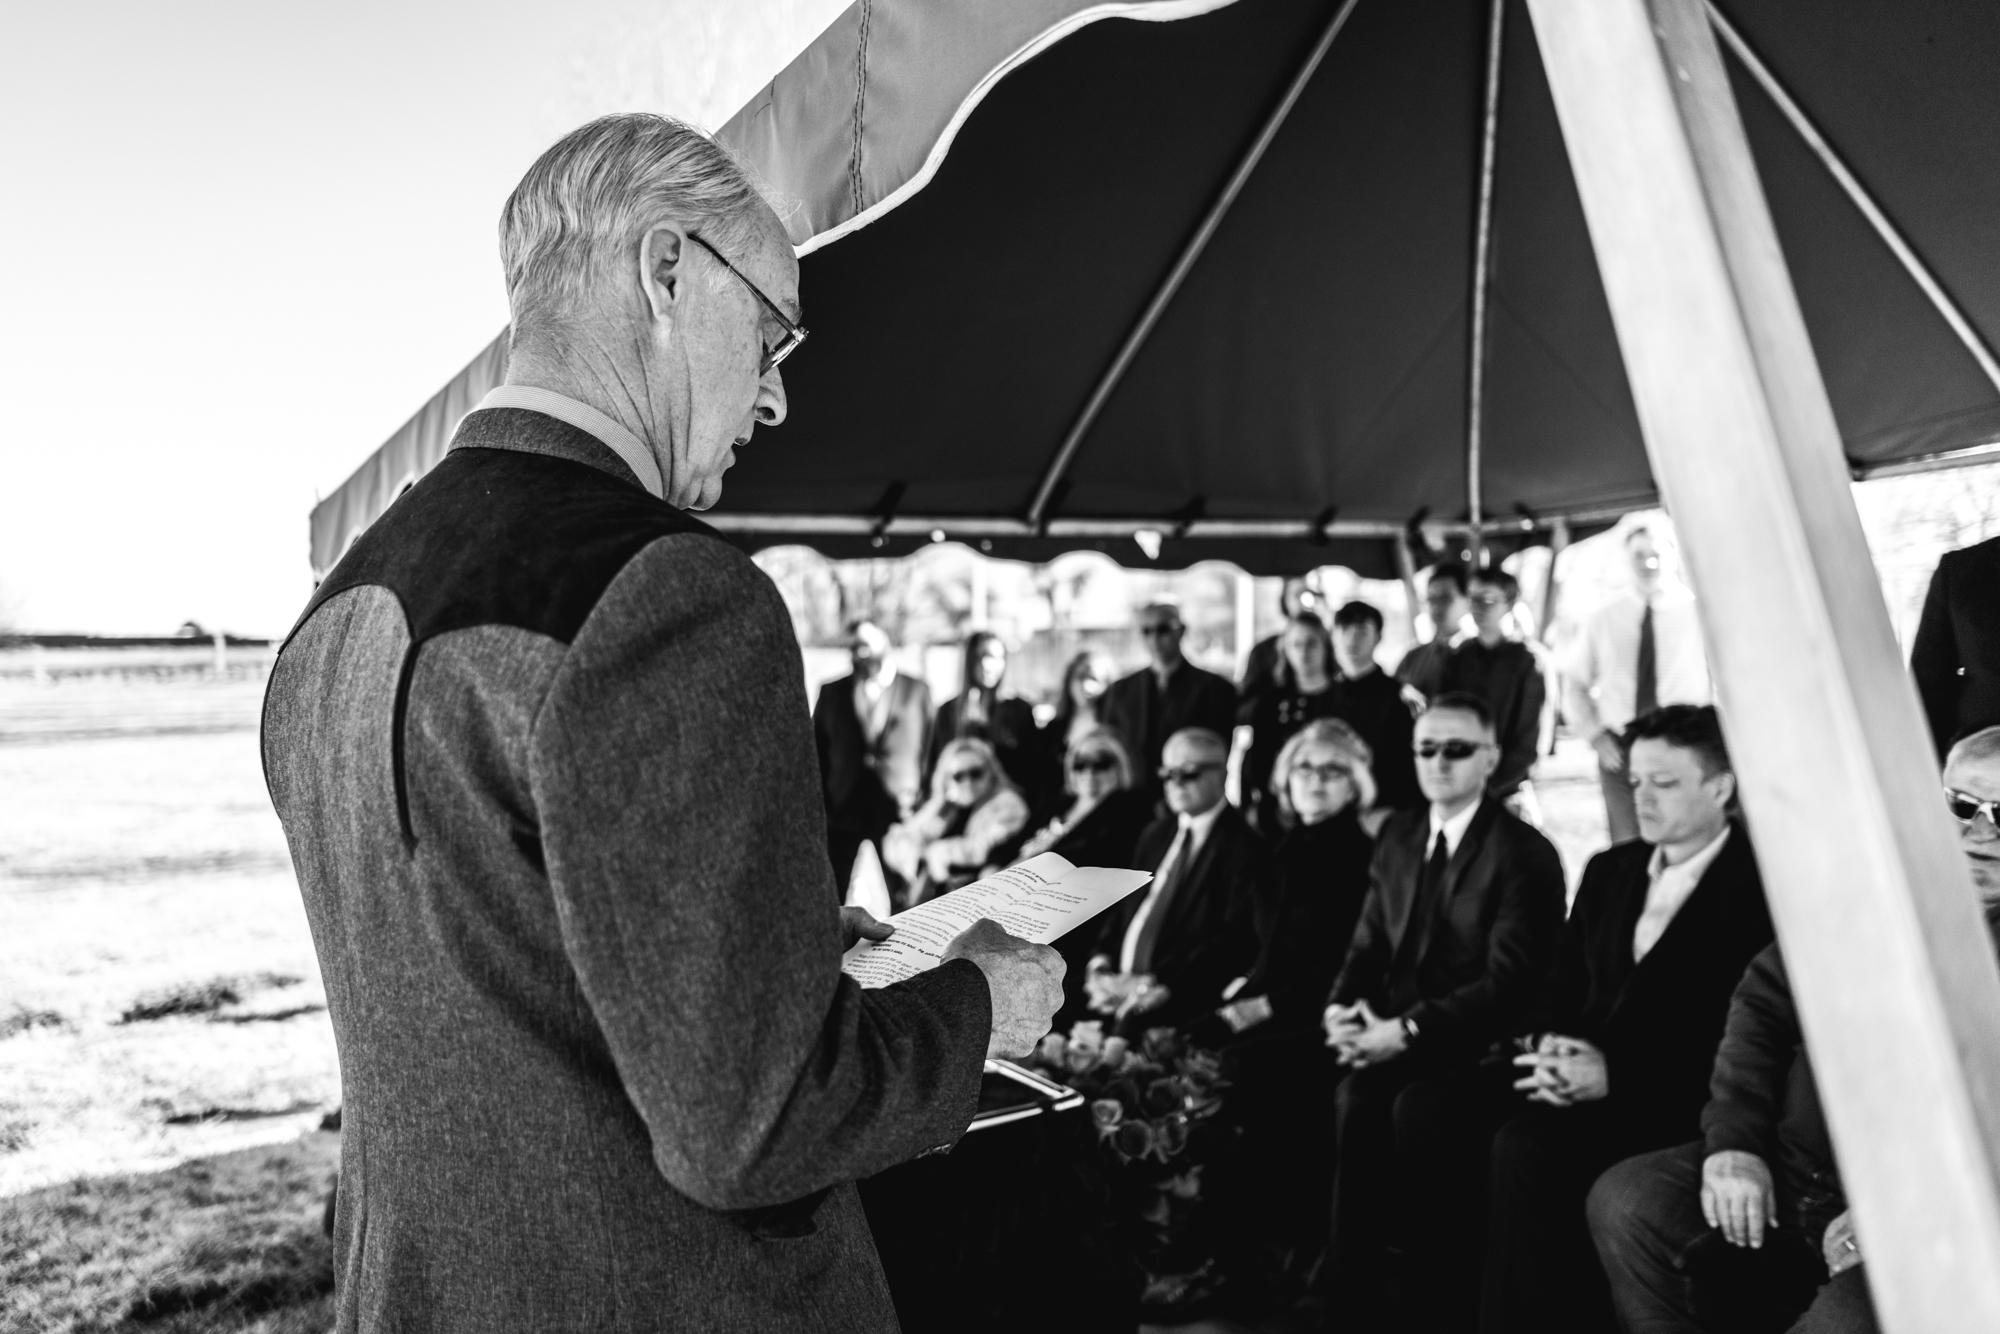 A man gives a eulogy under a tent during a memorial service in a cemetery in Greeley, Colorado